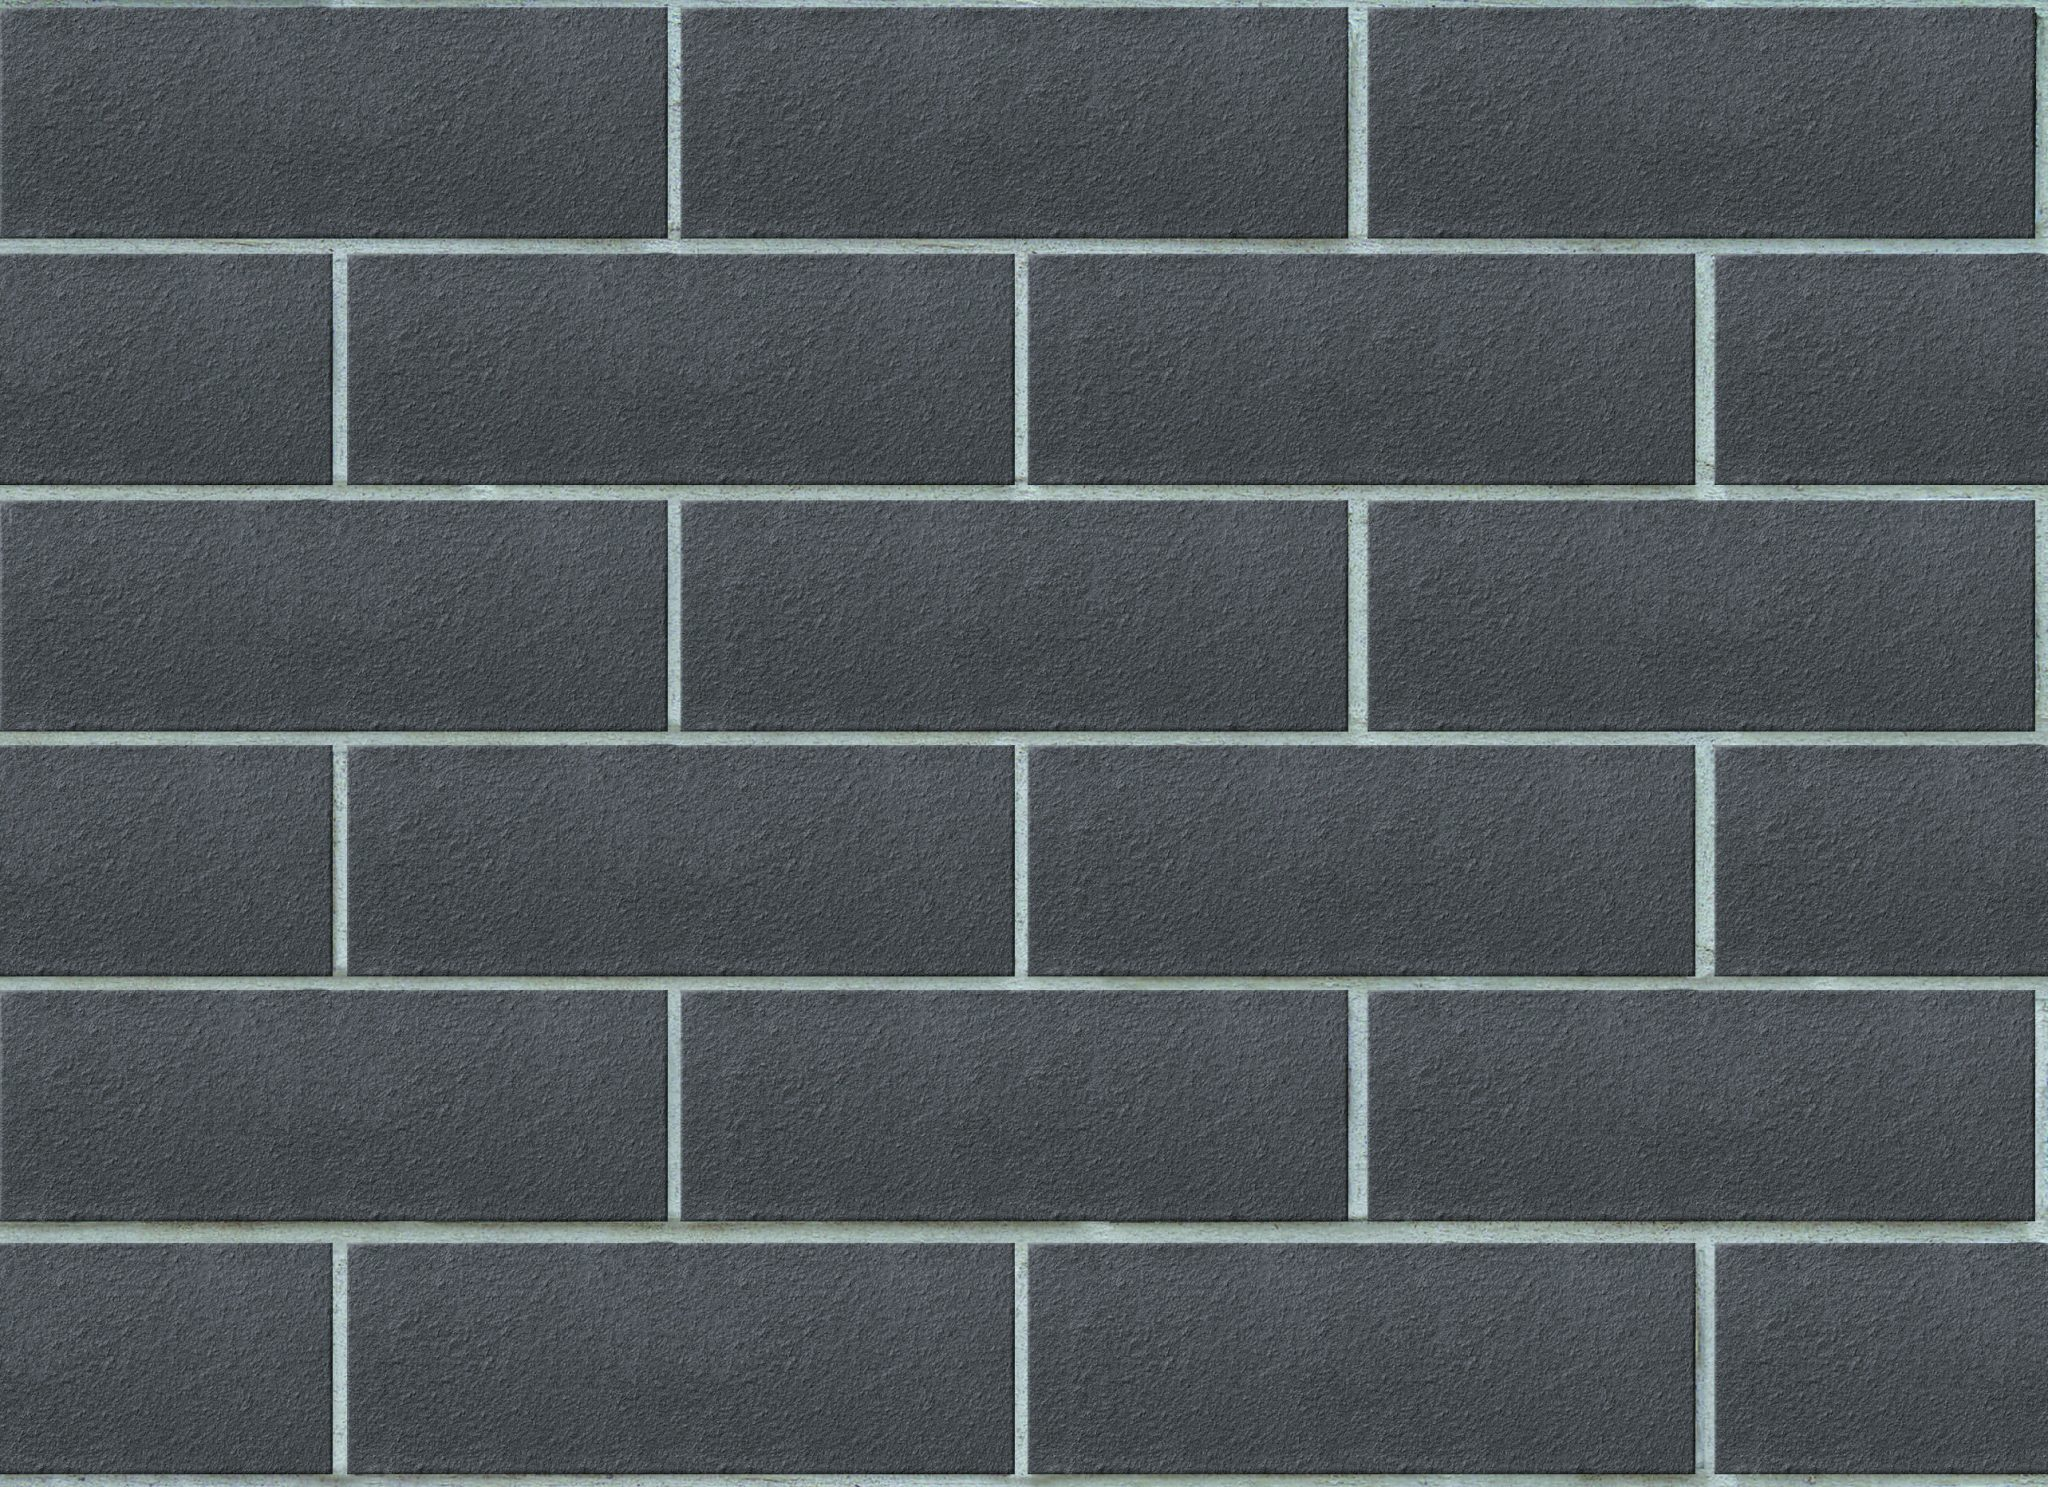 The Allure Collection Koko NSW Bricks